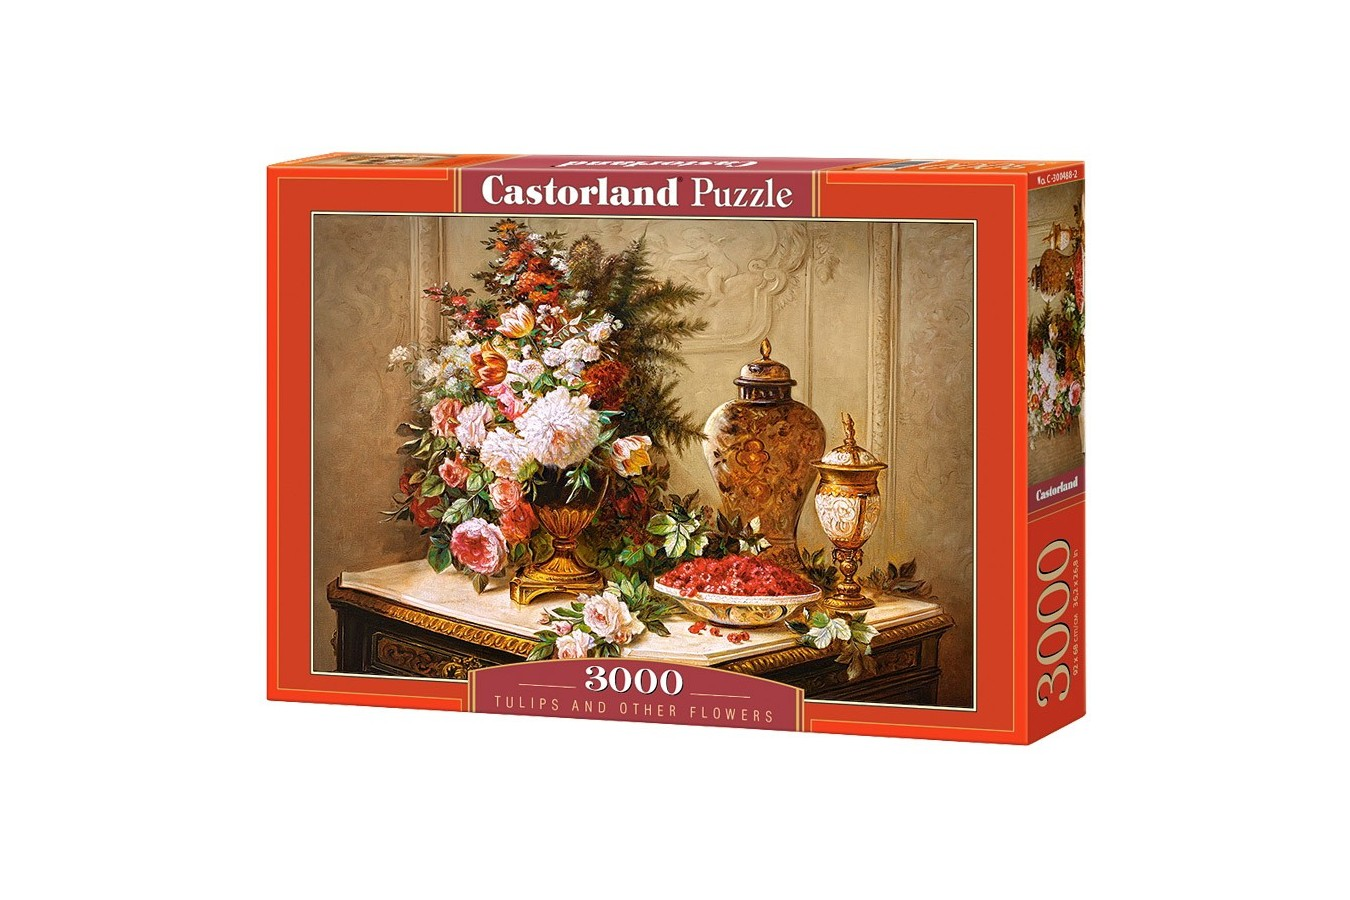 Puzzle Castorland - Tulips and other flowers, 3000 piese